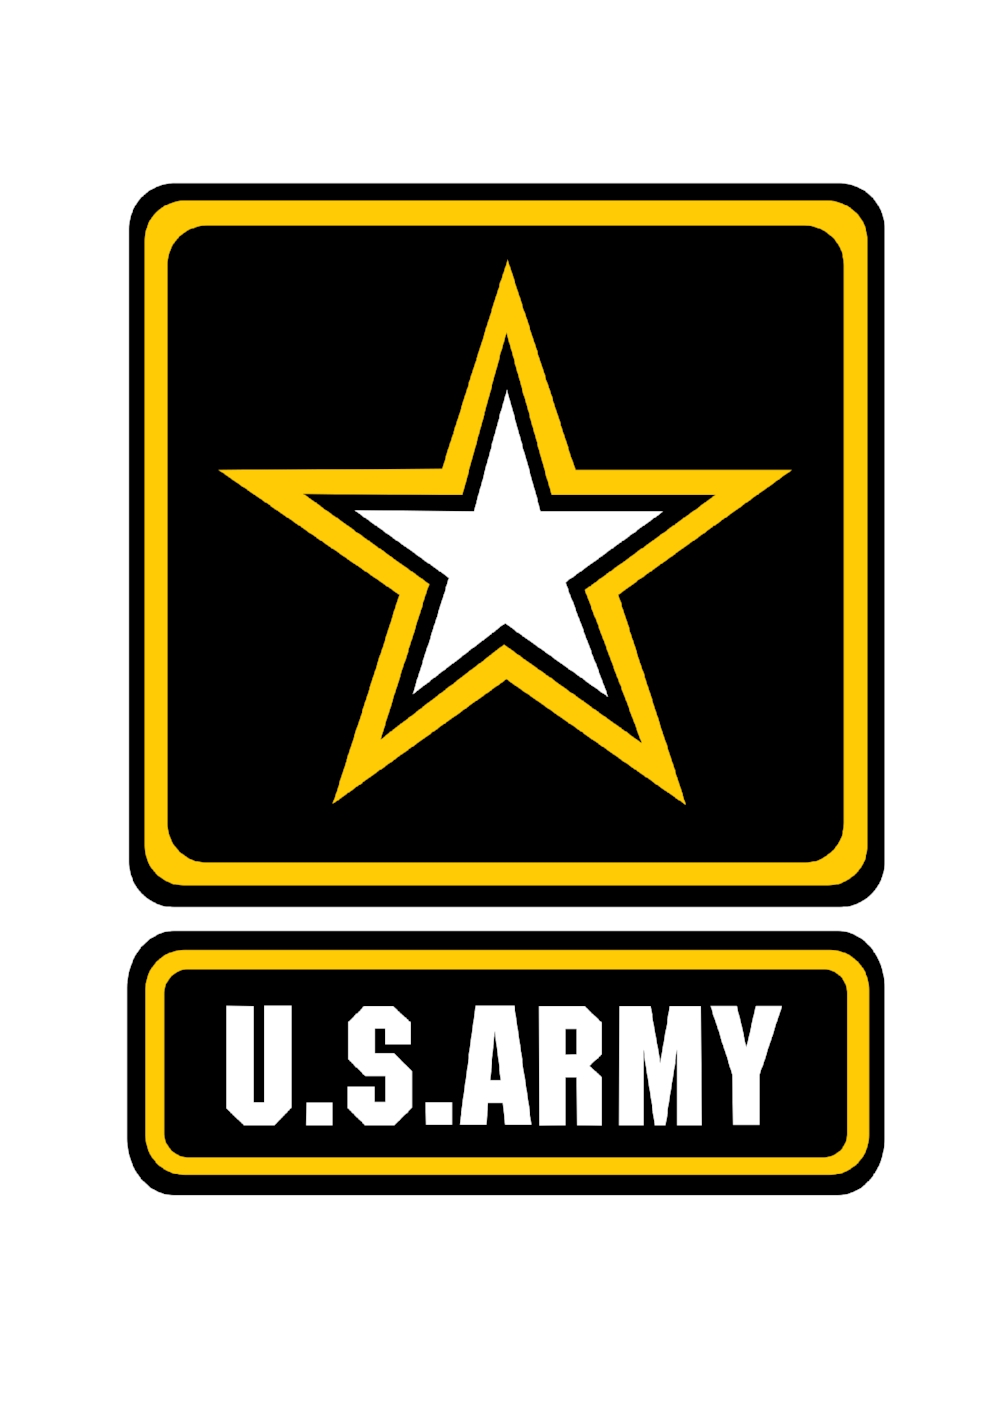 US ARMY Logo-01.jpg